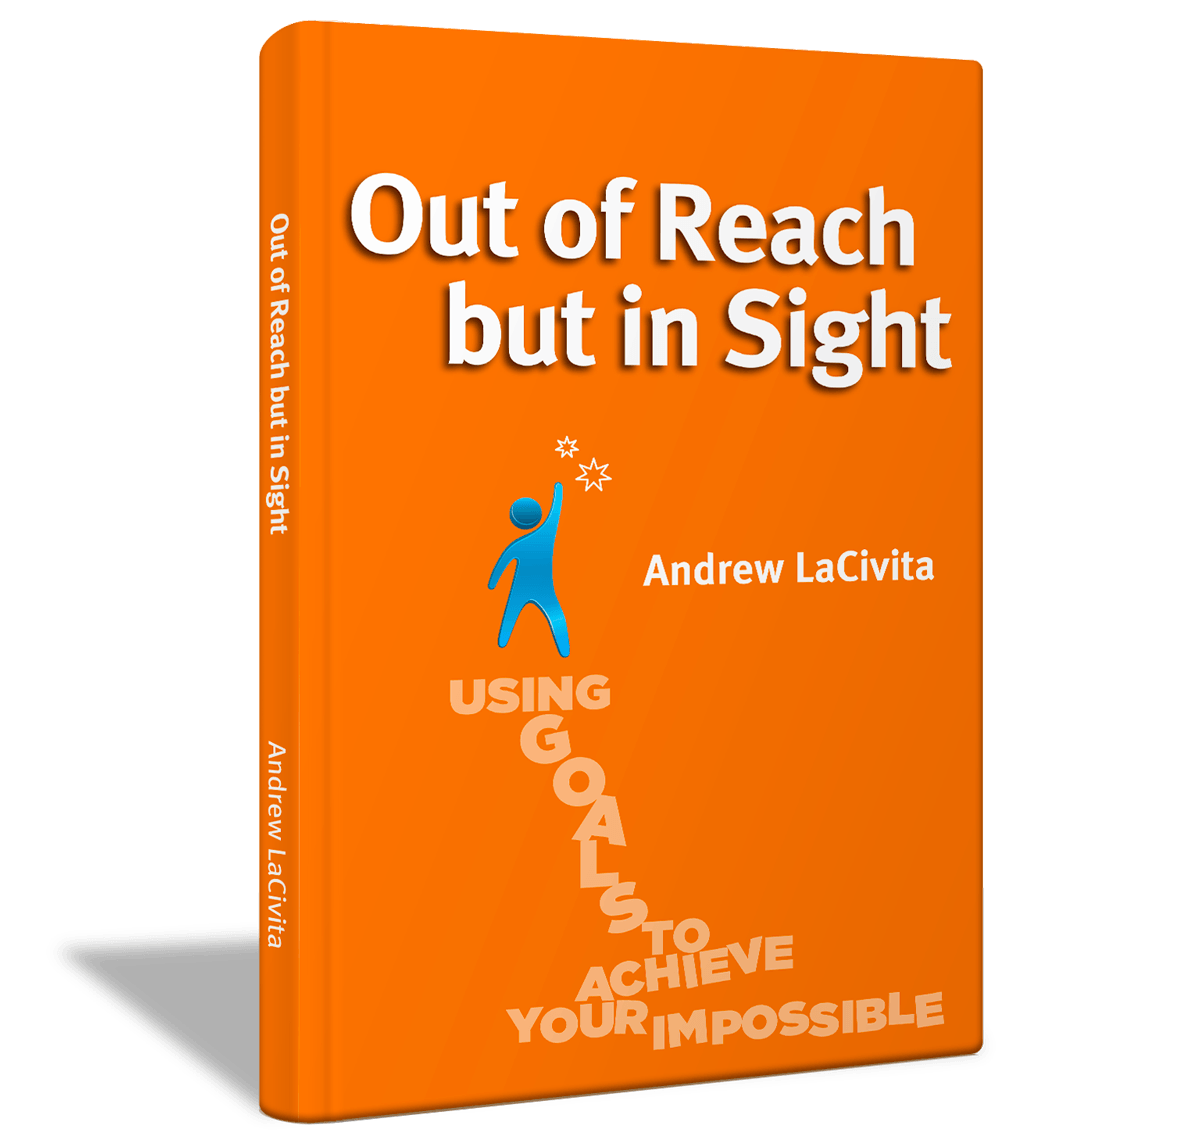 OutofReach-but-in-Sight-book-mockup-7-2015